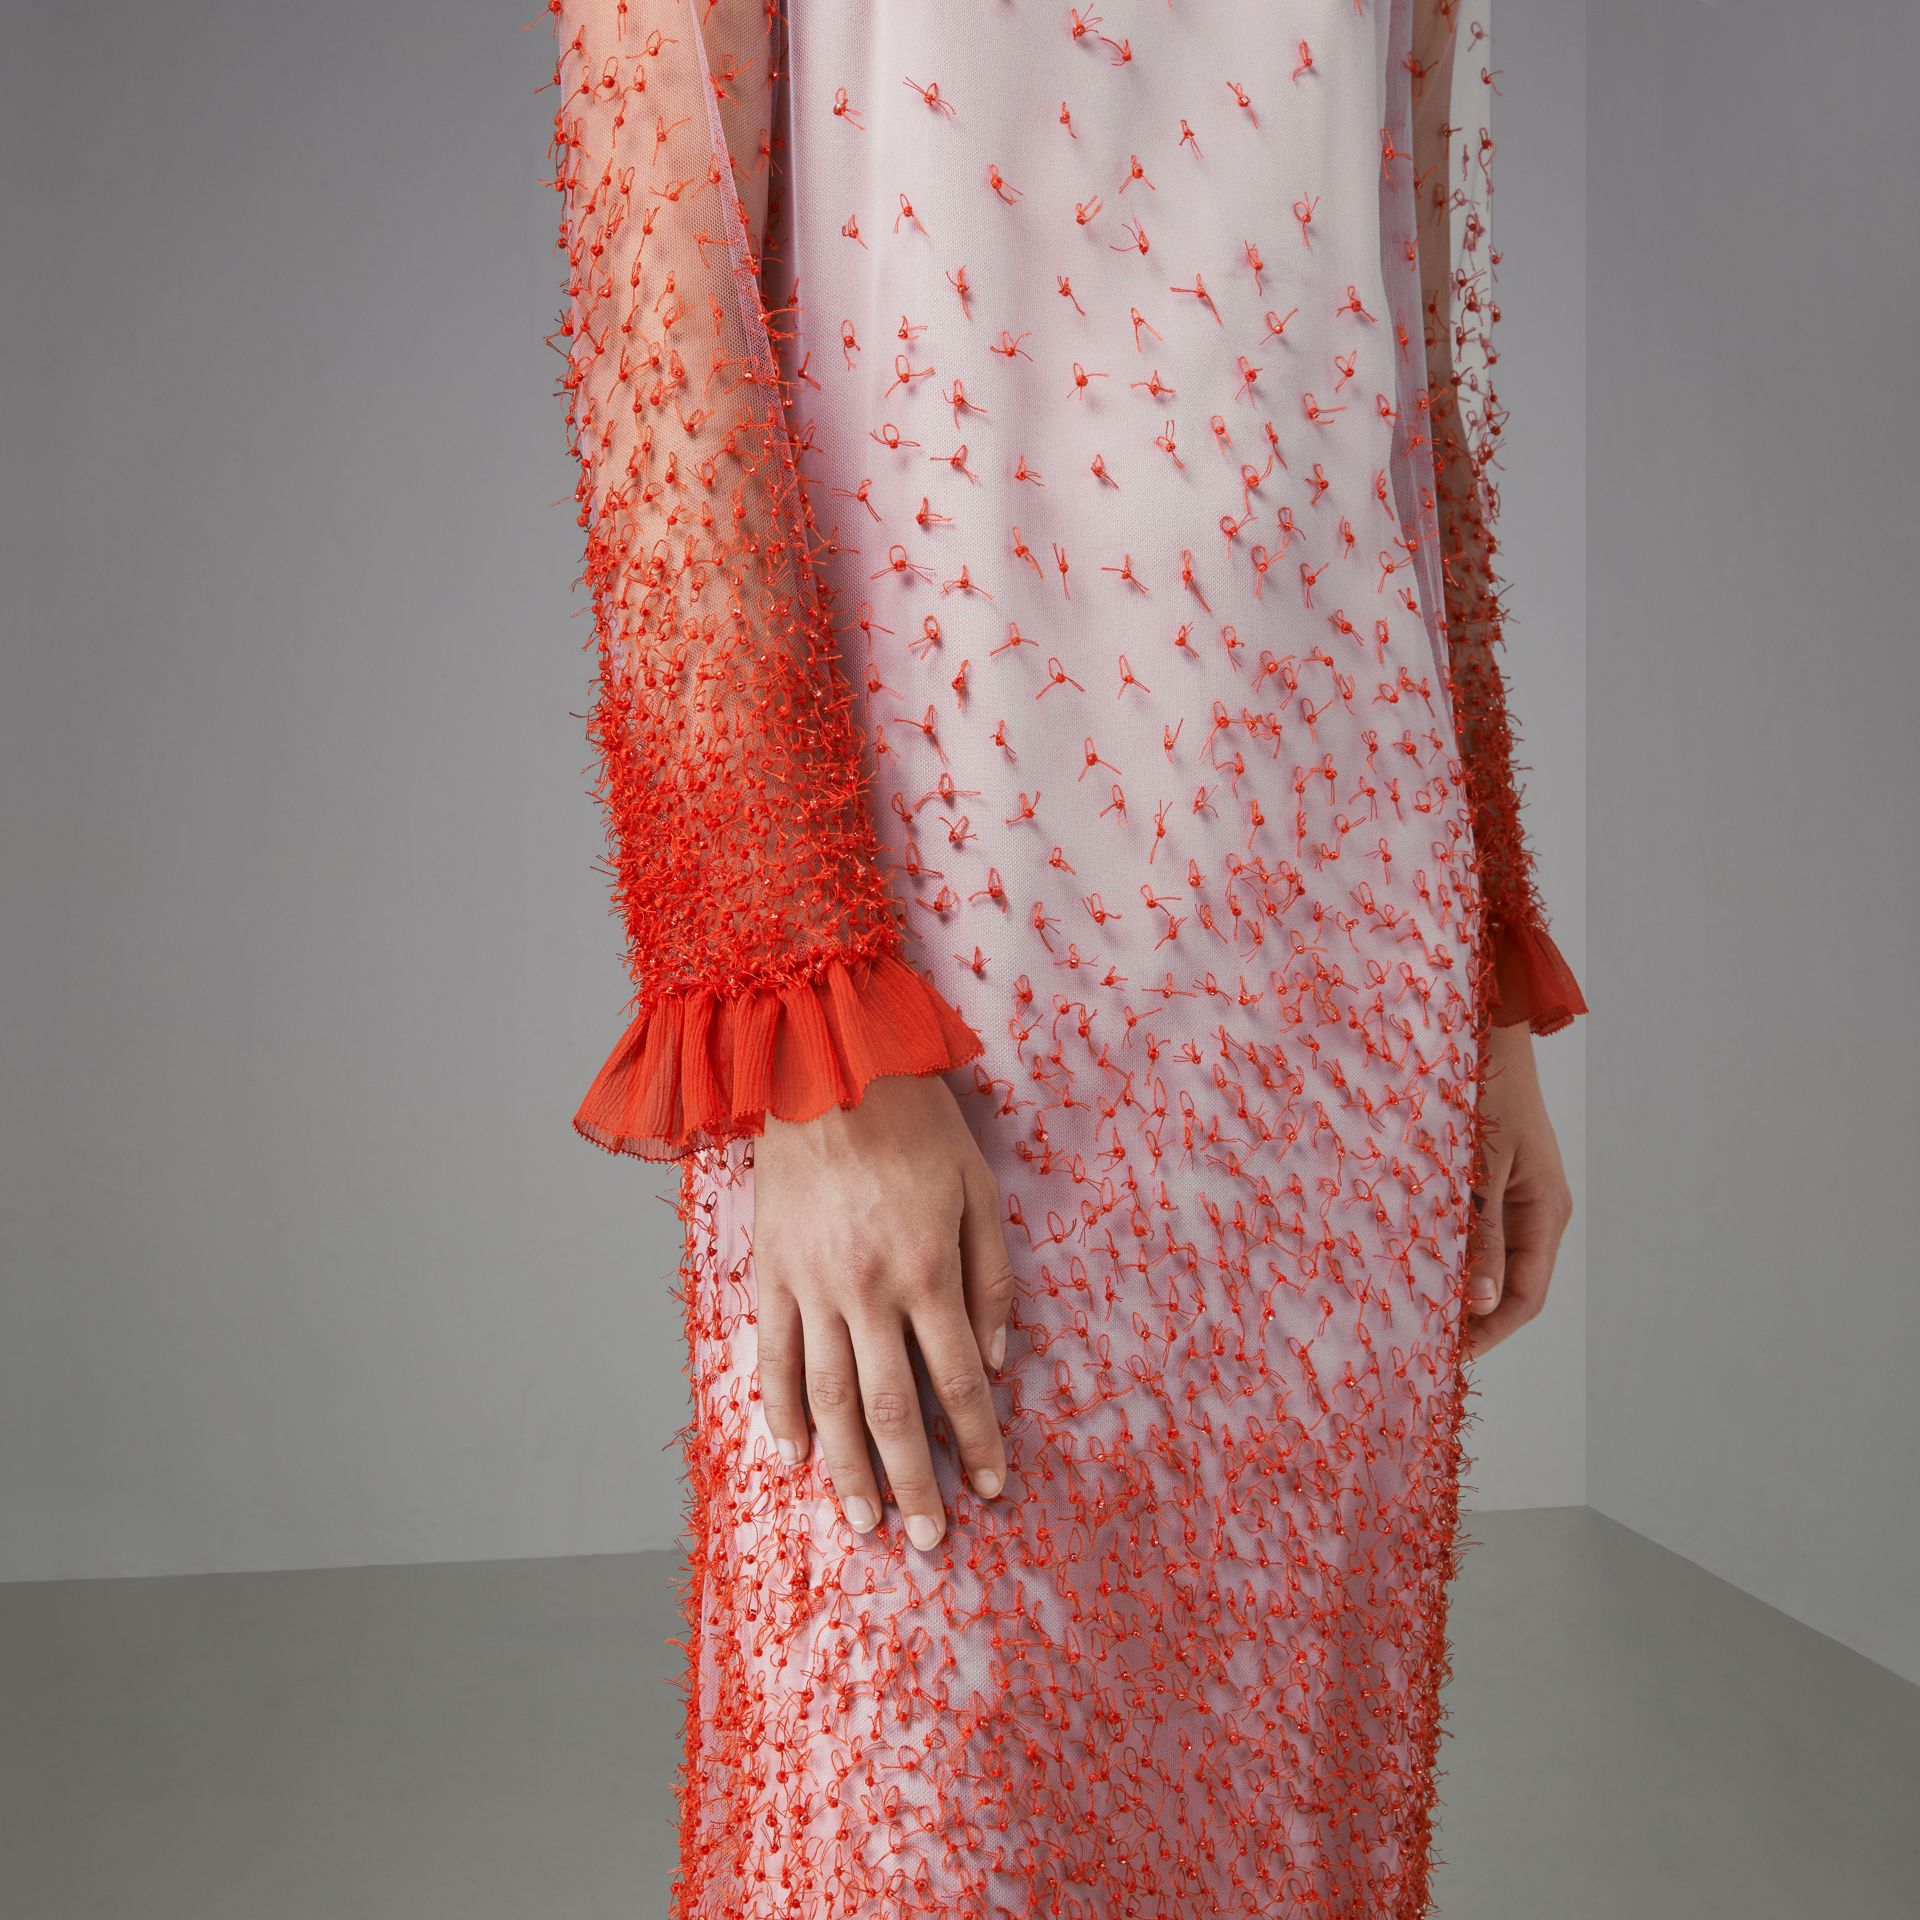 Dégradé Hand-beaded Crepon Dress in Coral - Women | Burberry - gallery image 4